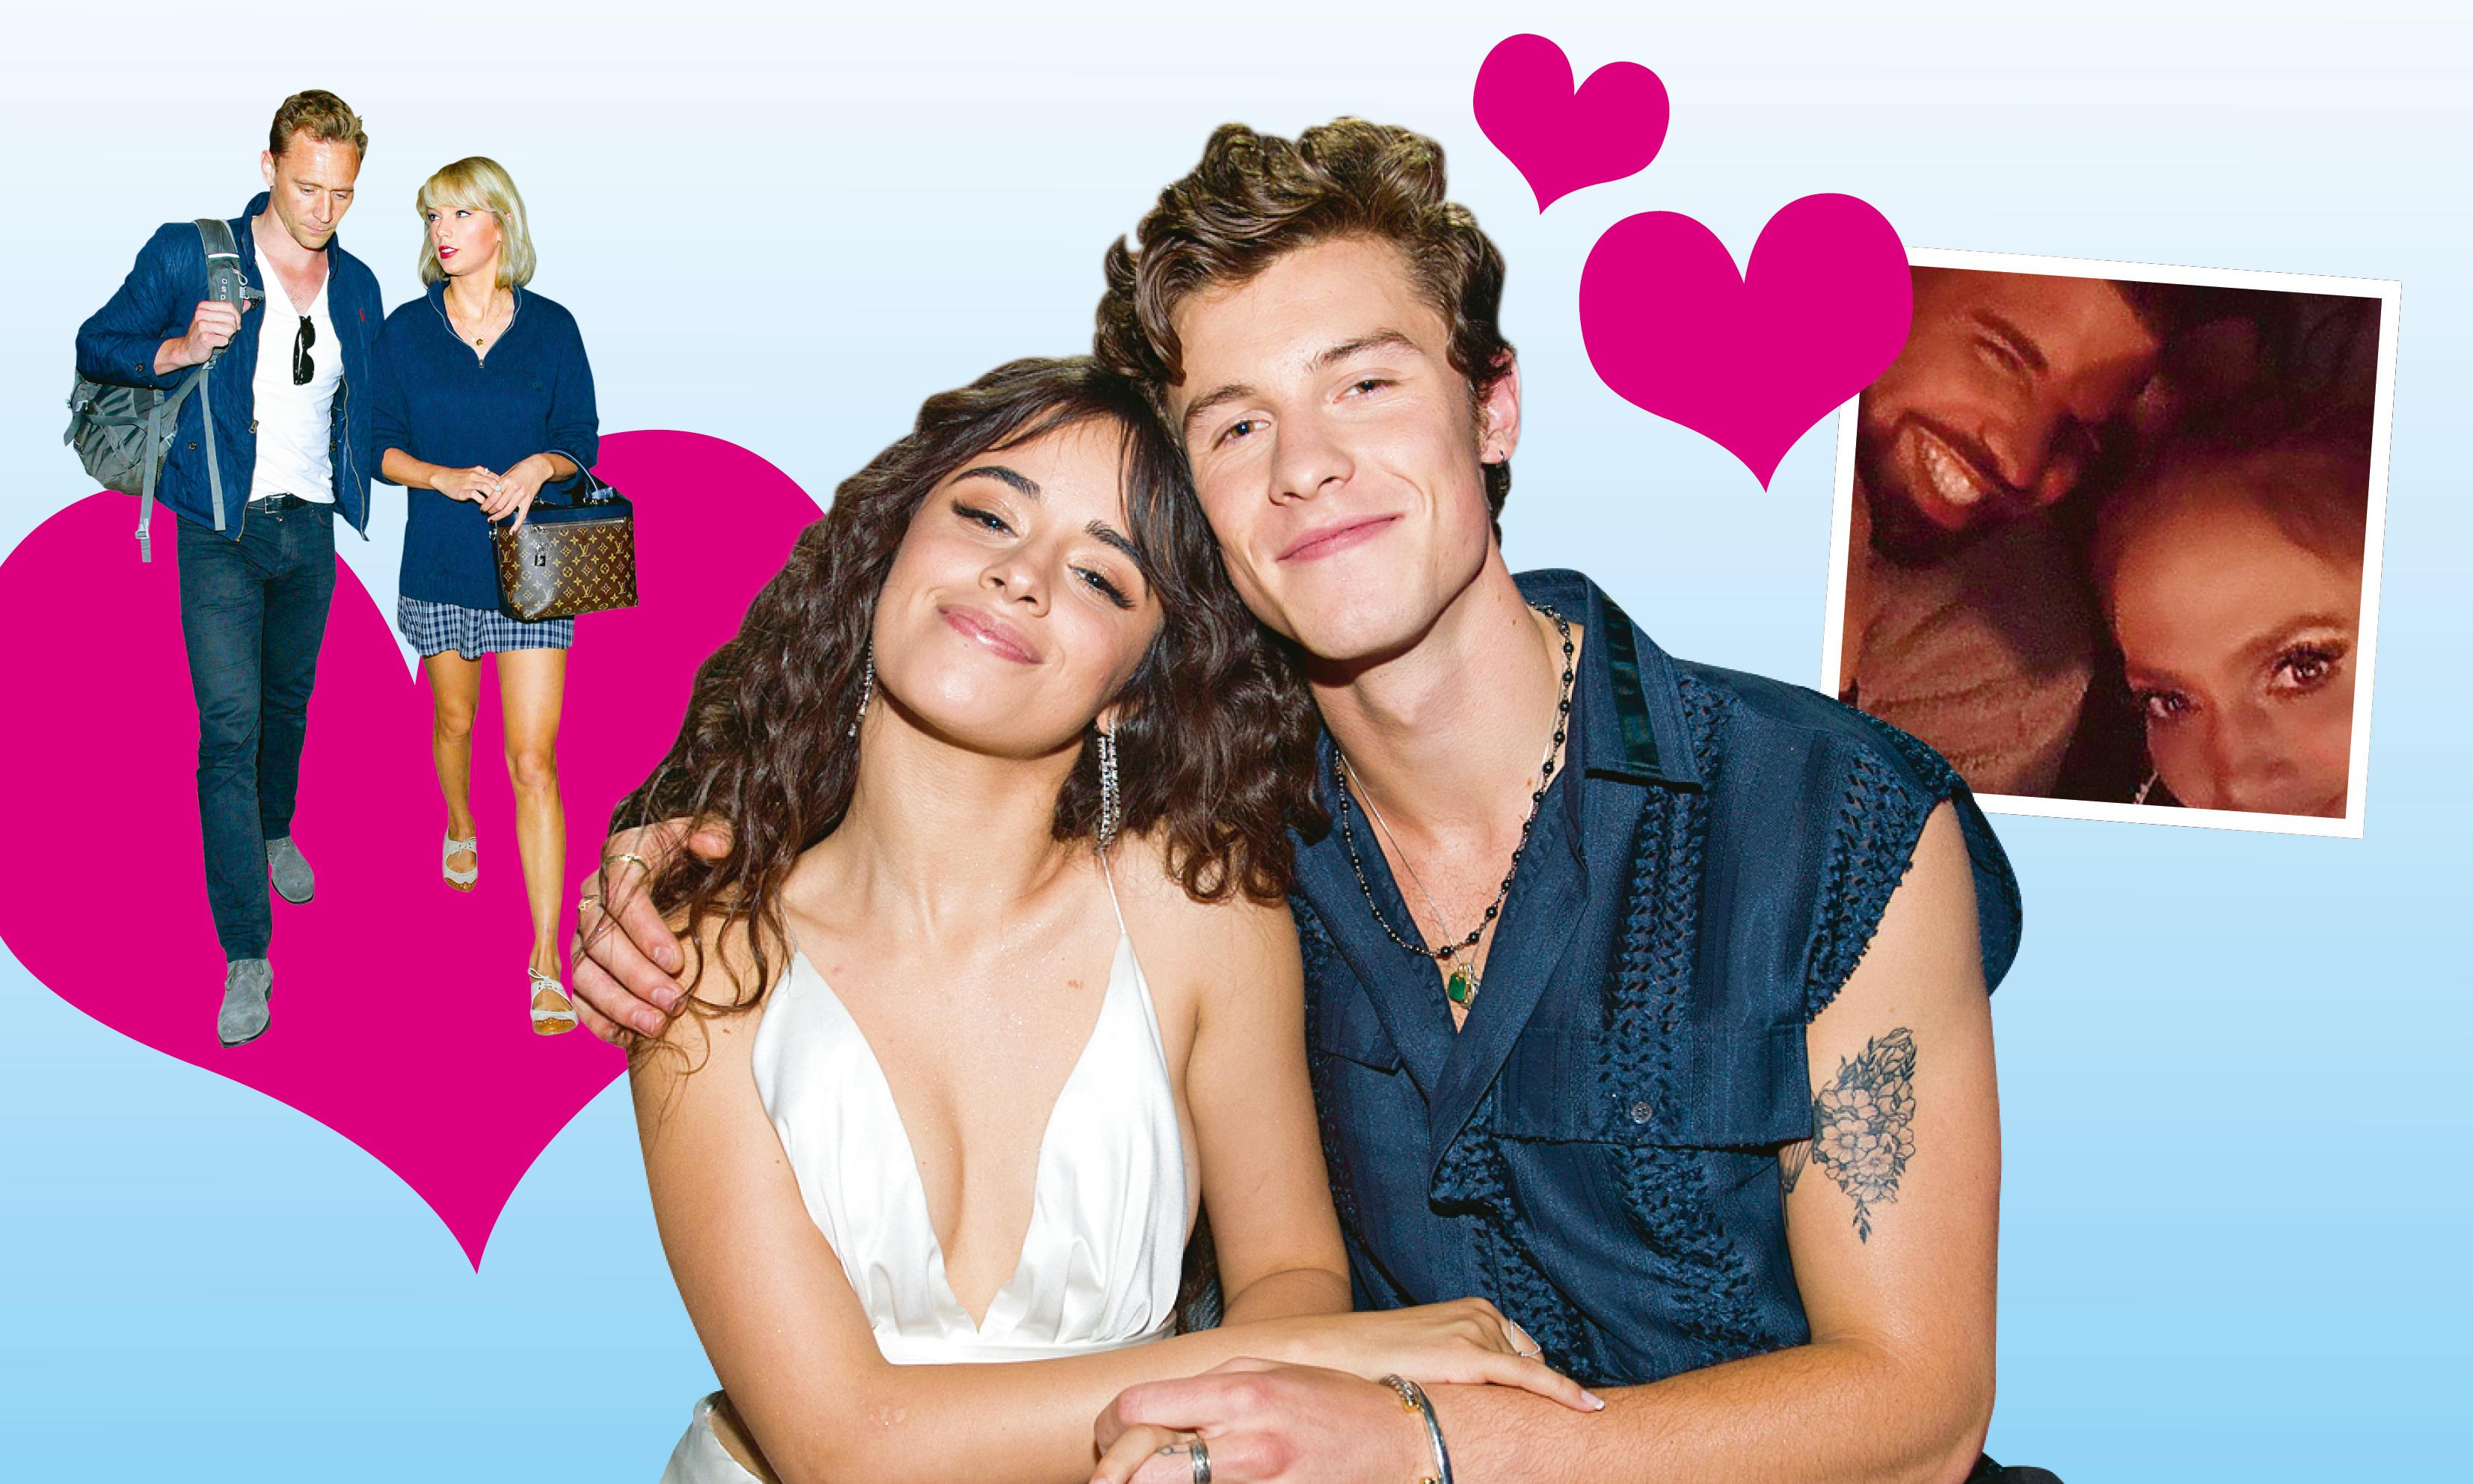 Bad fauxmance: when celebrity couples become PR stunts